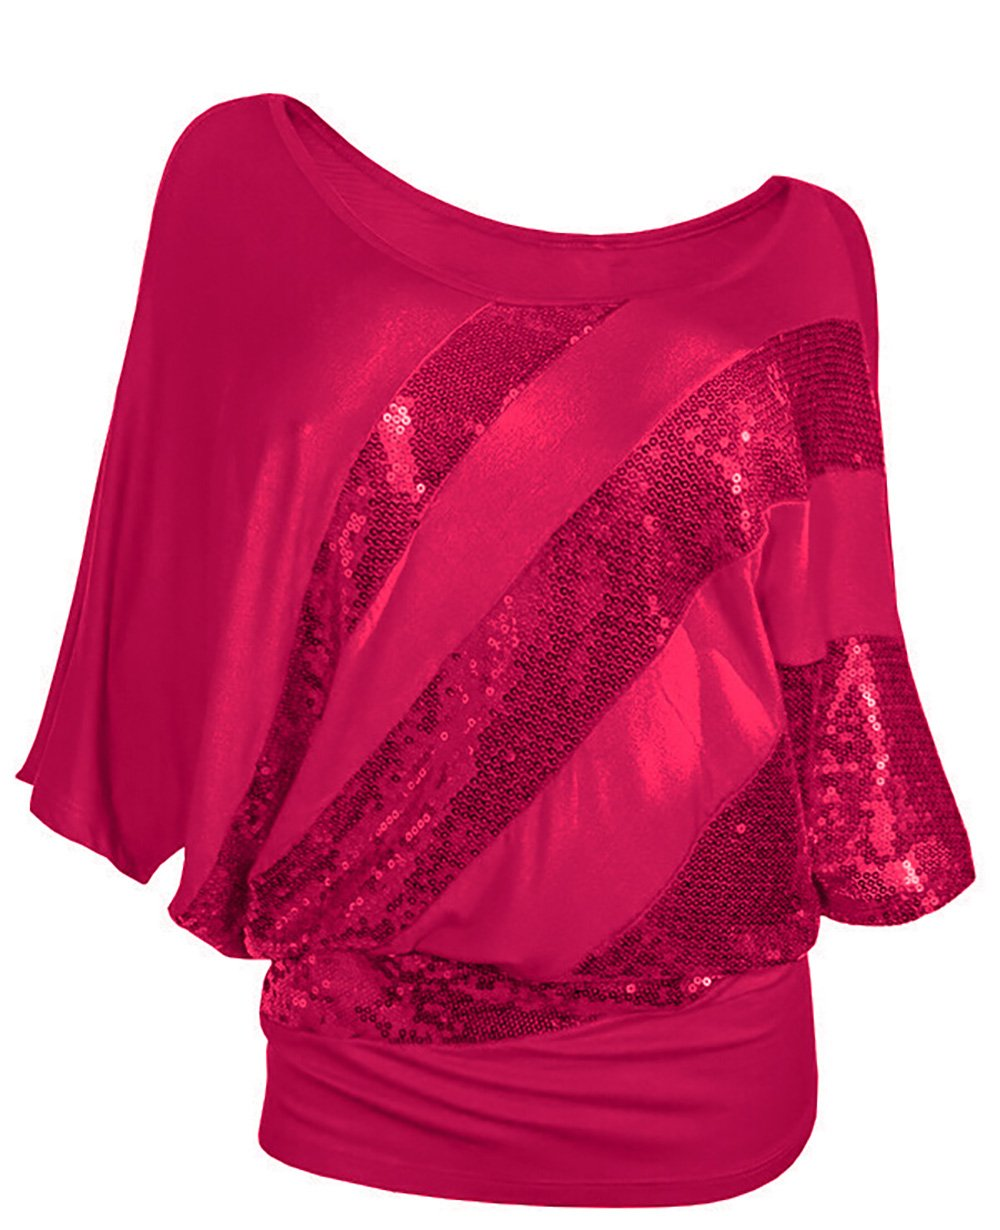 Glistening Sequin Cocktail Club Party Top Shimmer Glam Glitter Plus Size T-Shirt (XXXL, Red)